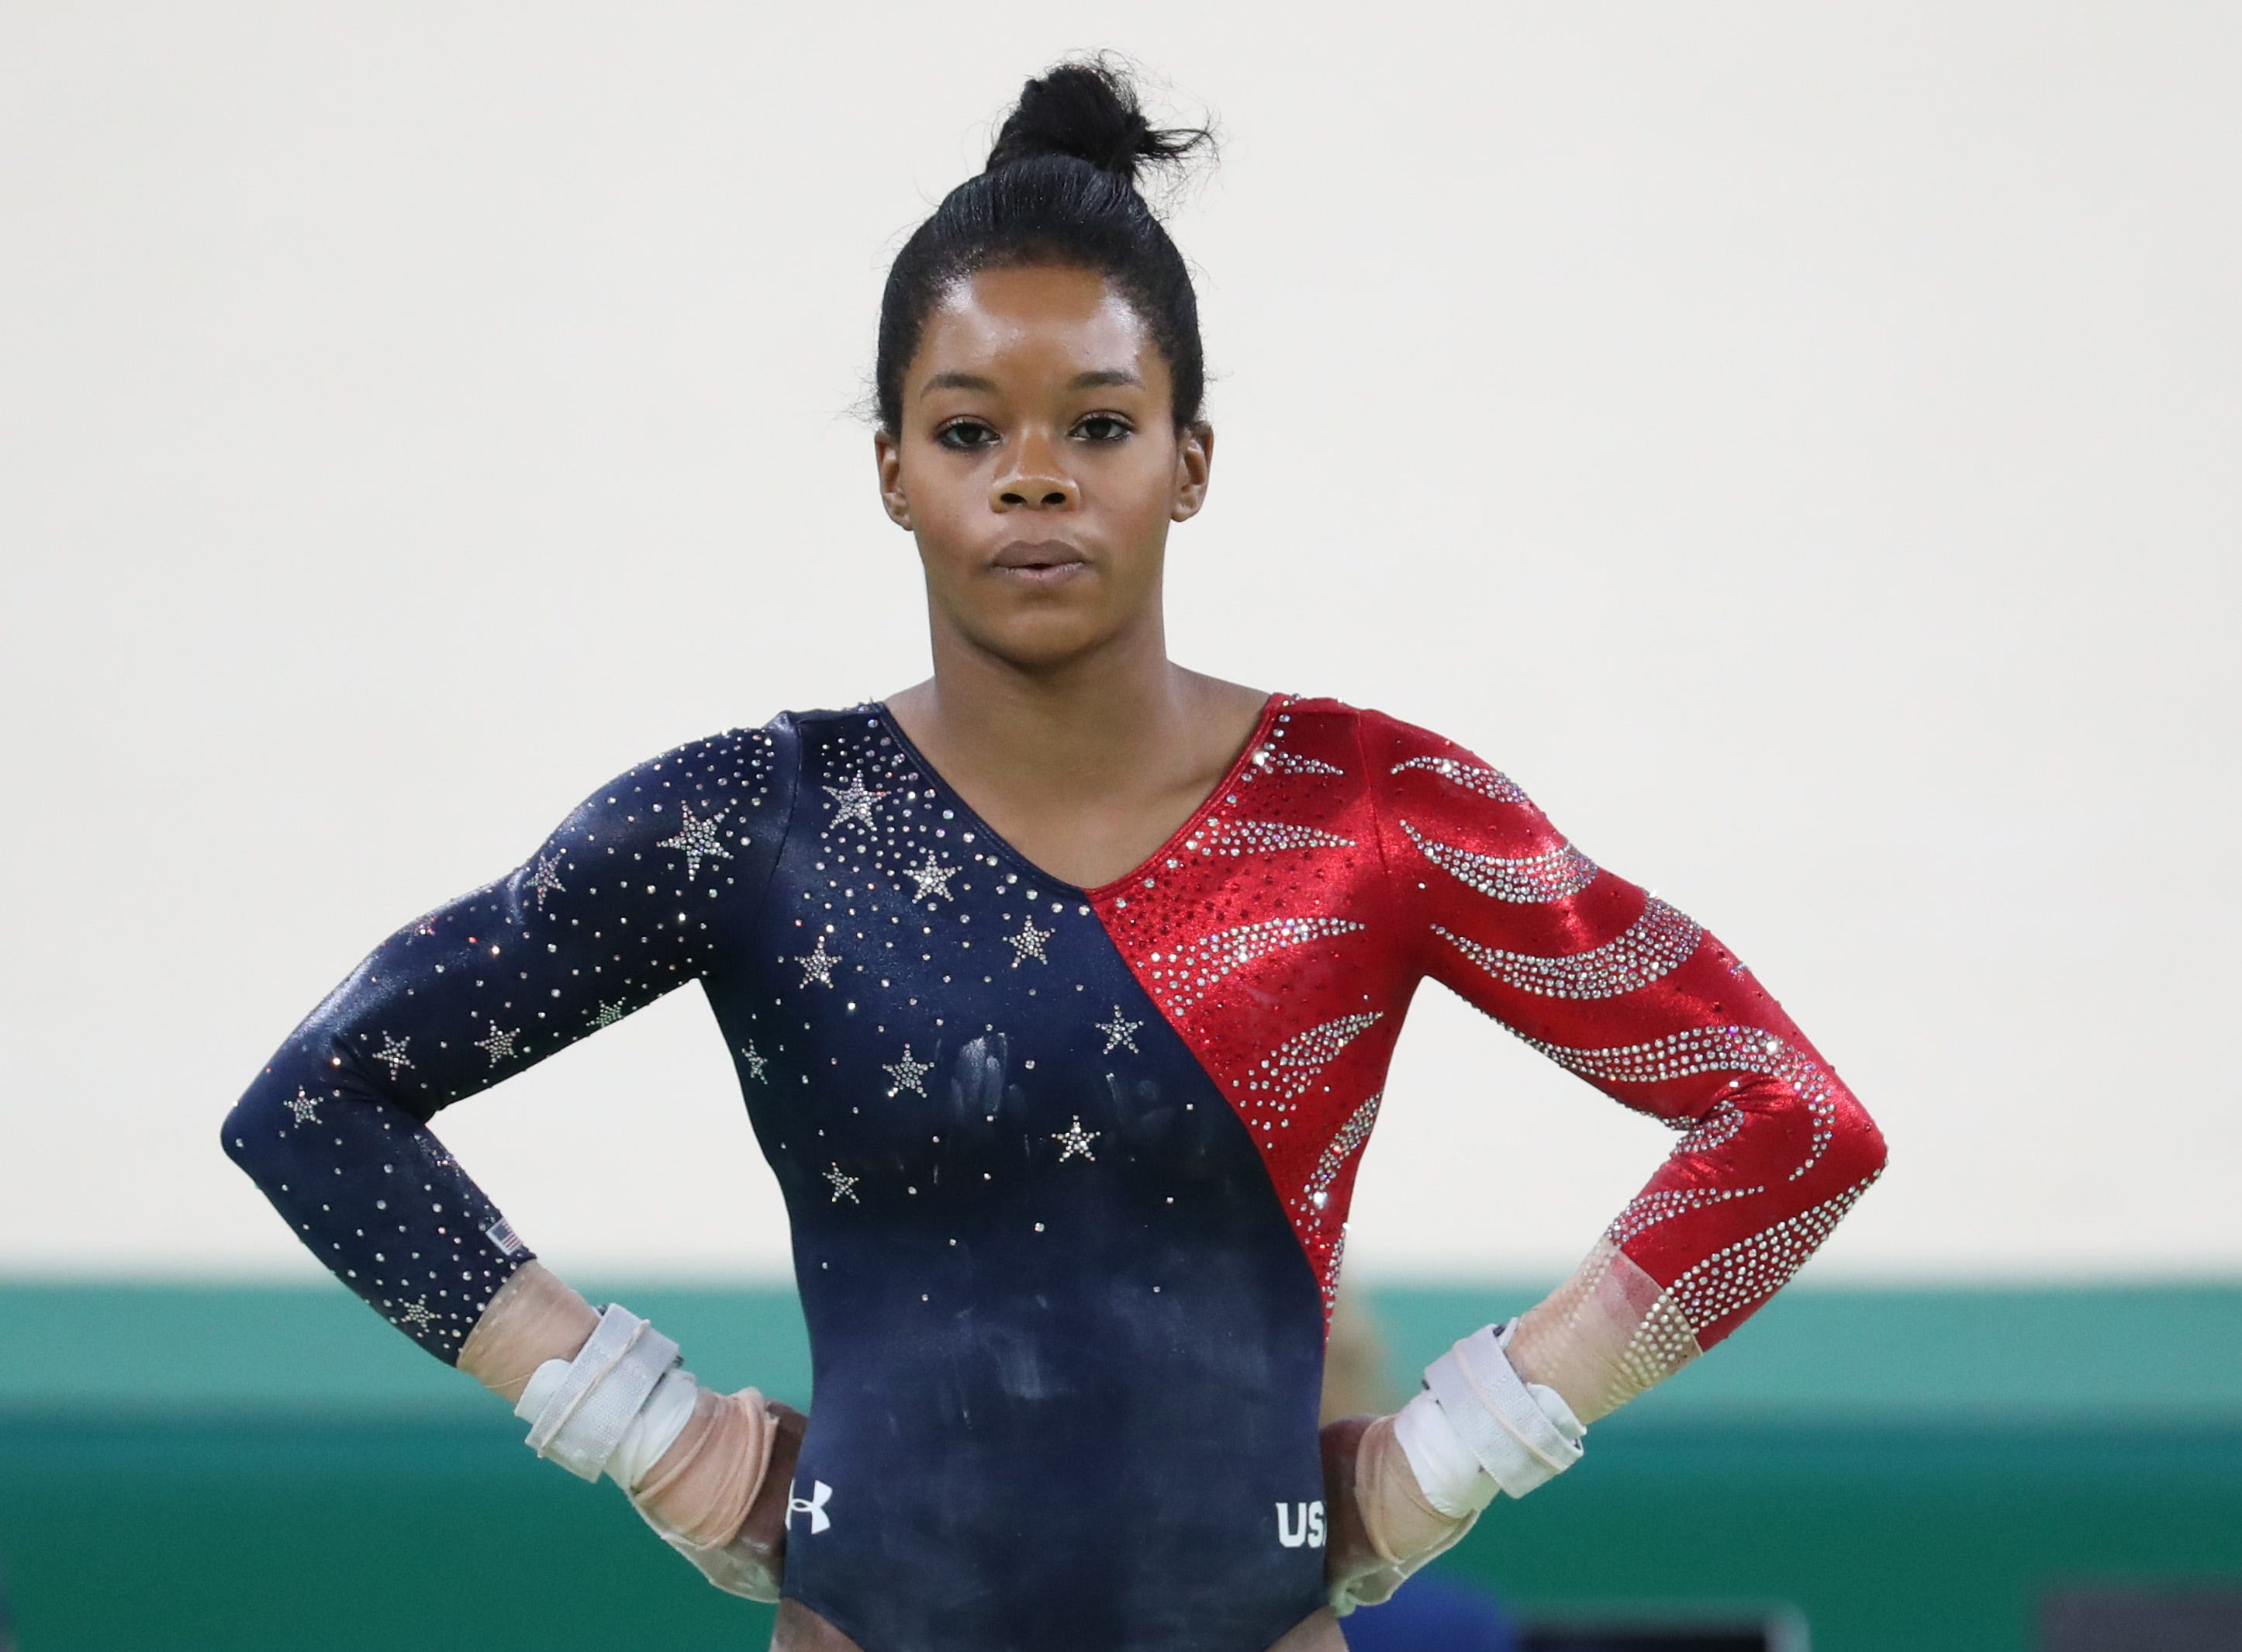 Gabby Douglas says she was abused by former USA Gymnastics doctor Larry Nassar